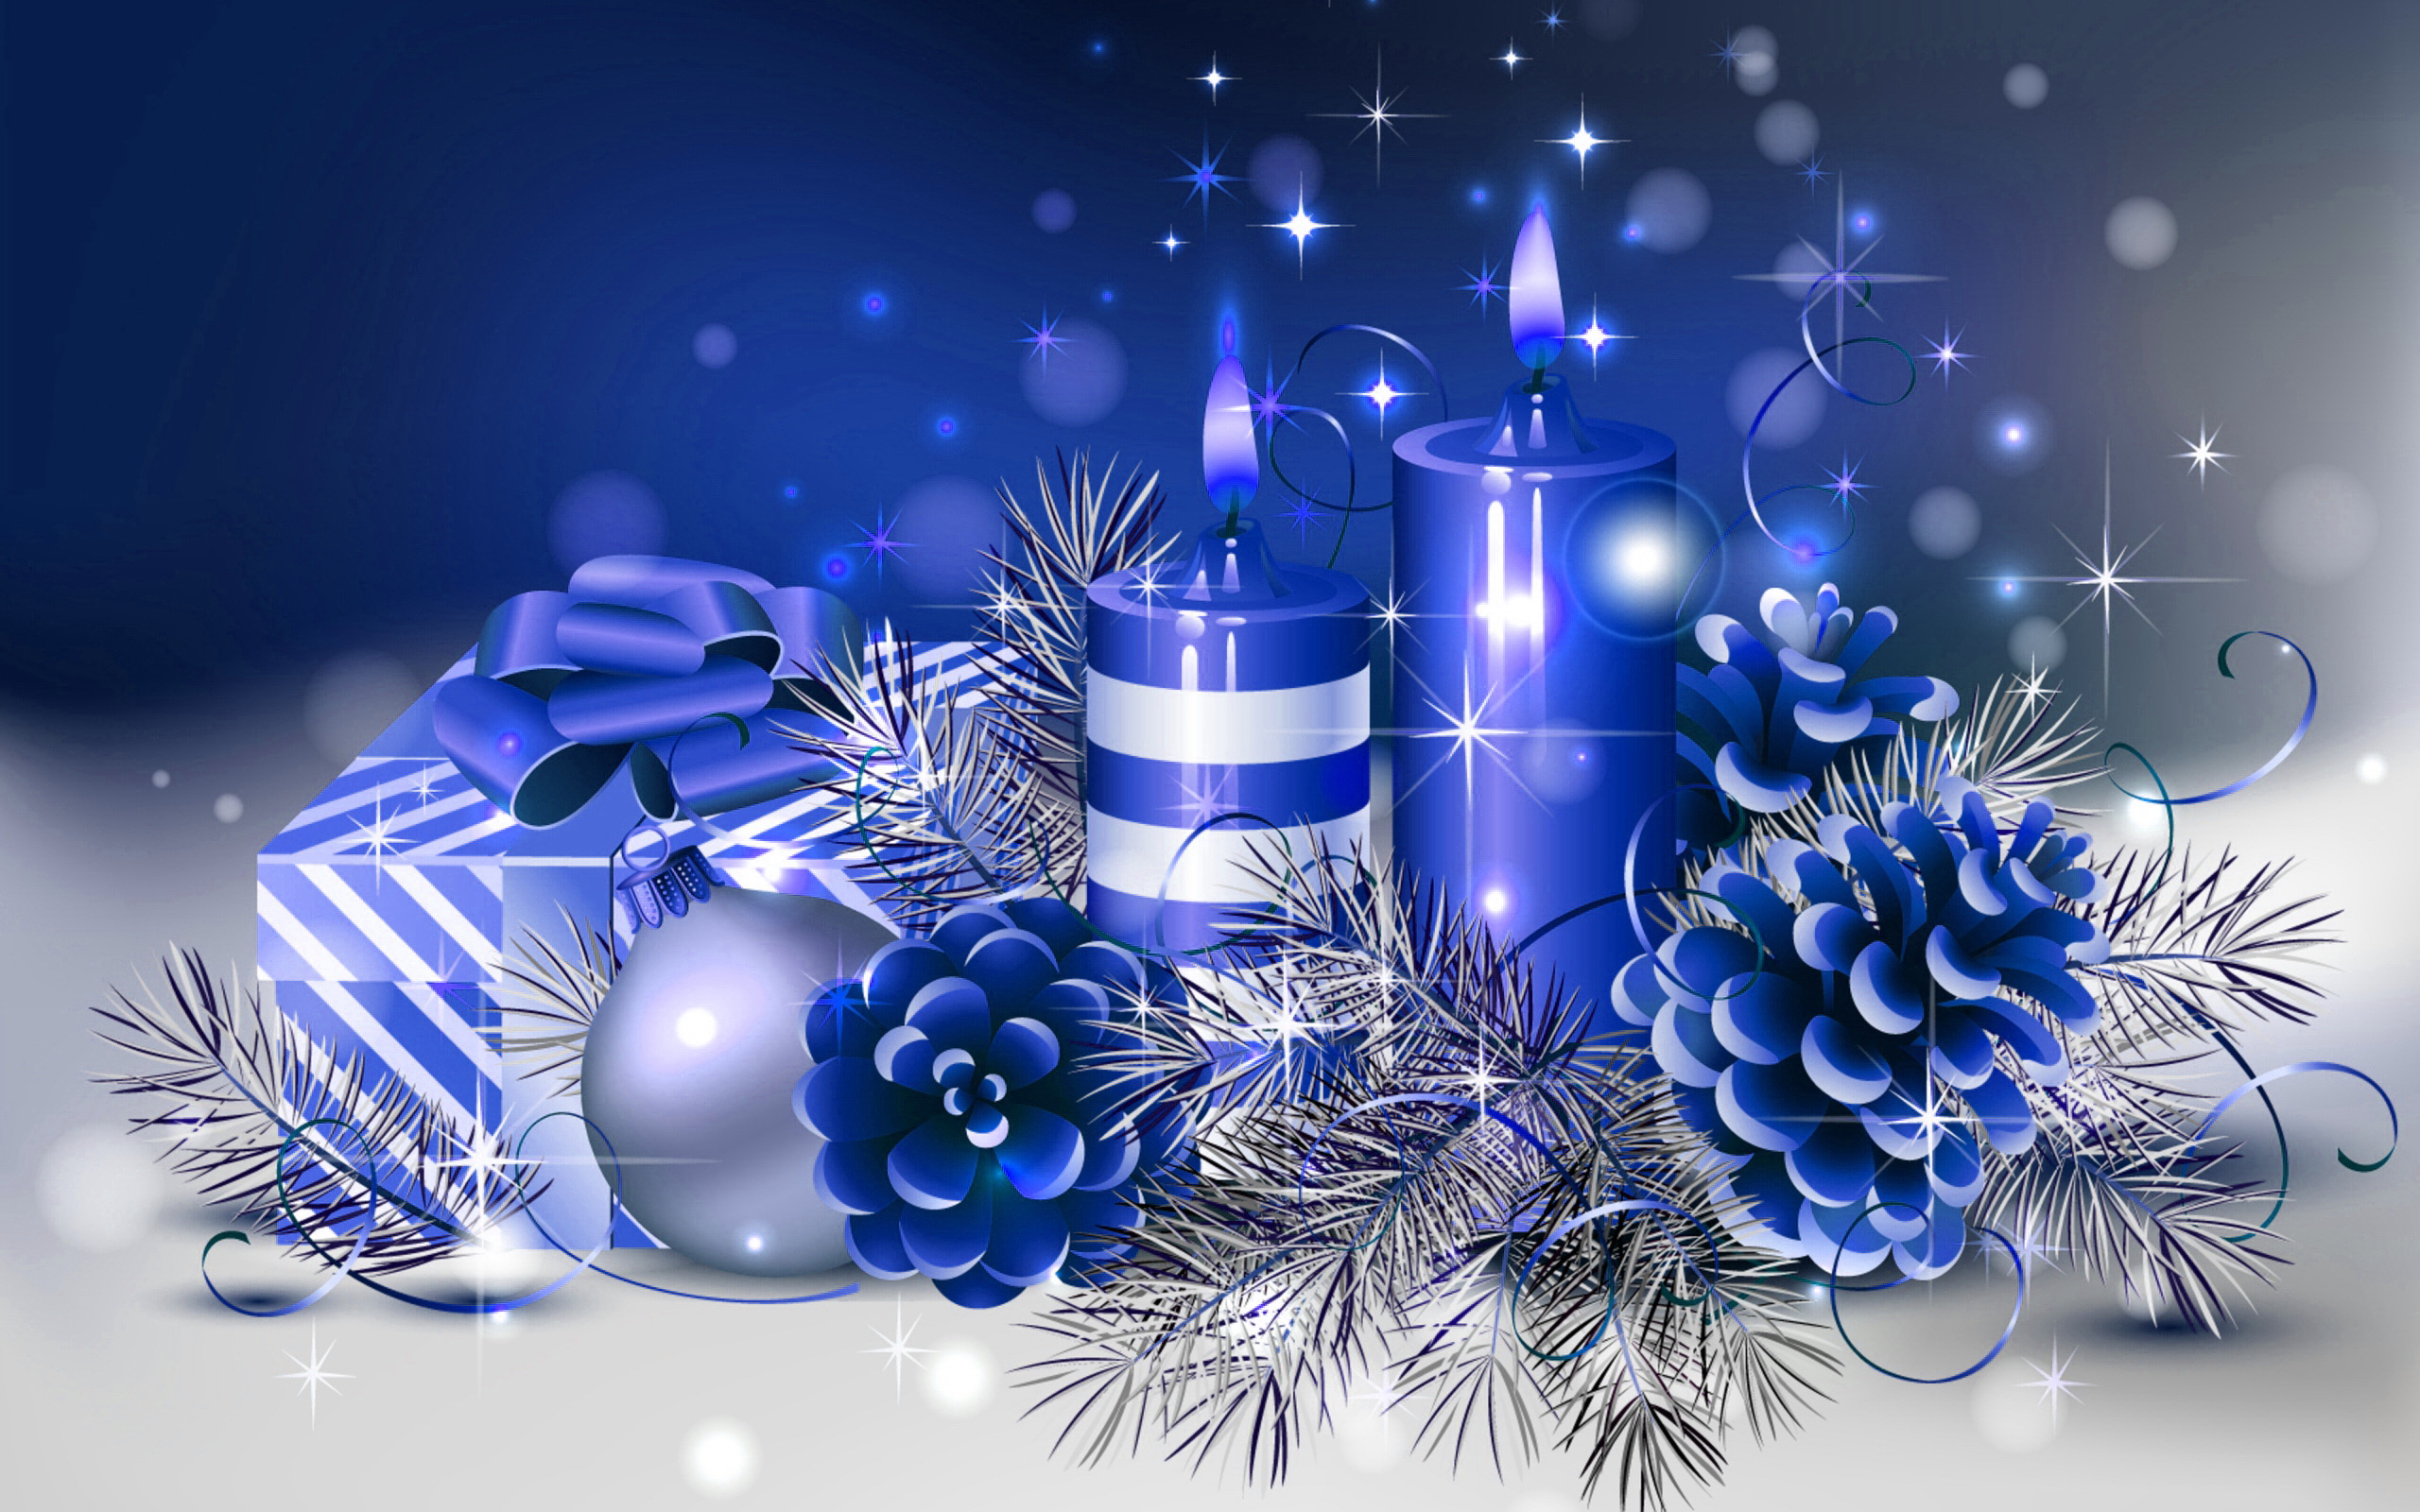 HD Blue Christmas Wallpaper